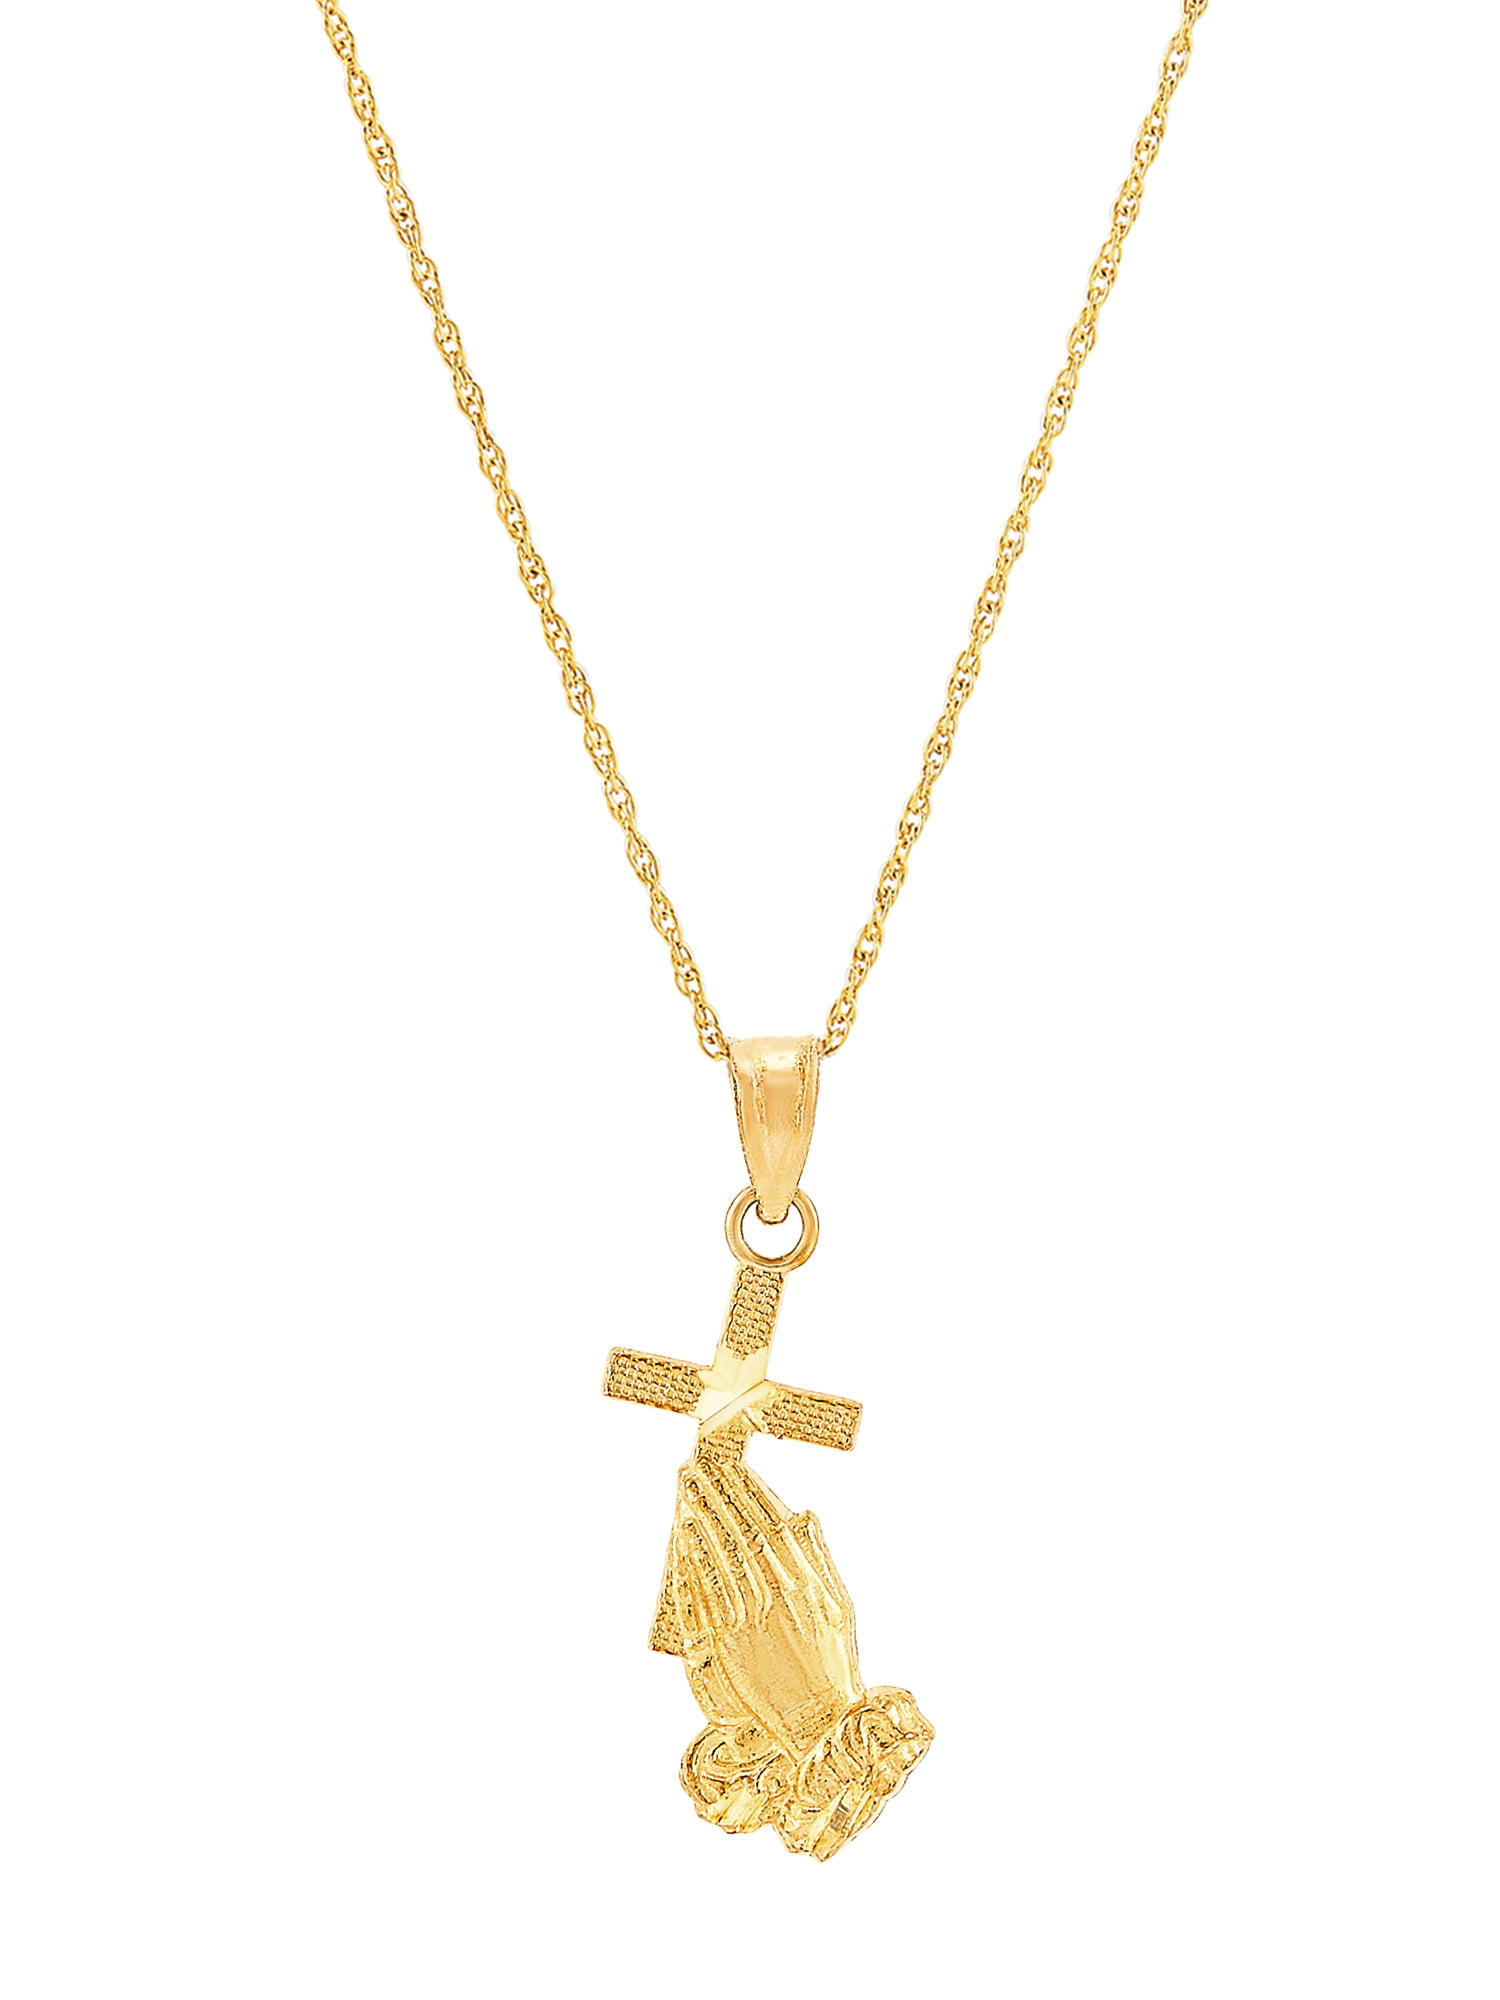 Suhana Jewellery Jesus Cross Pendant with 18 Chain for Unisex 14K White Gold Fn Simulated Diamond Studded